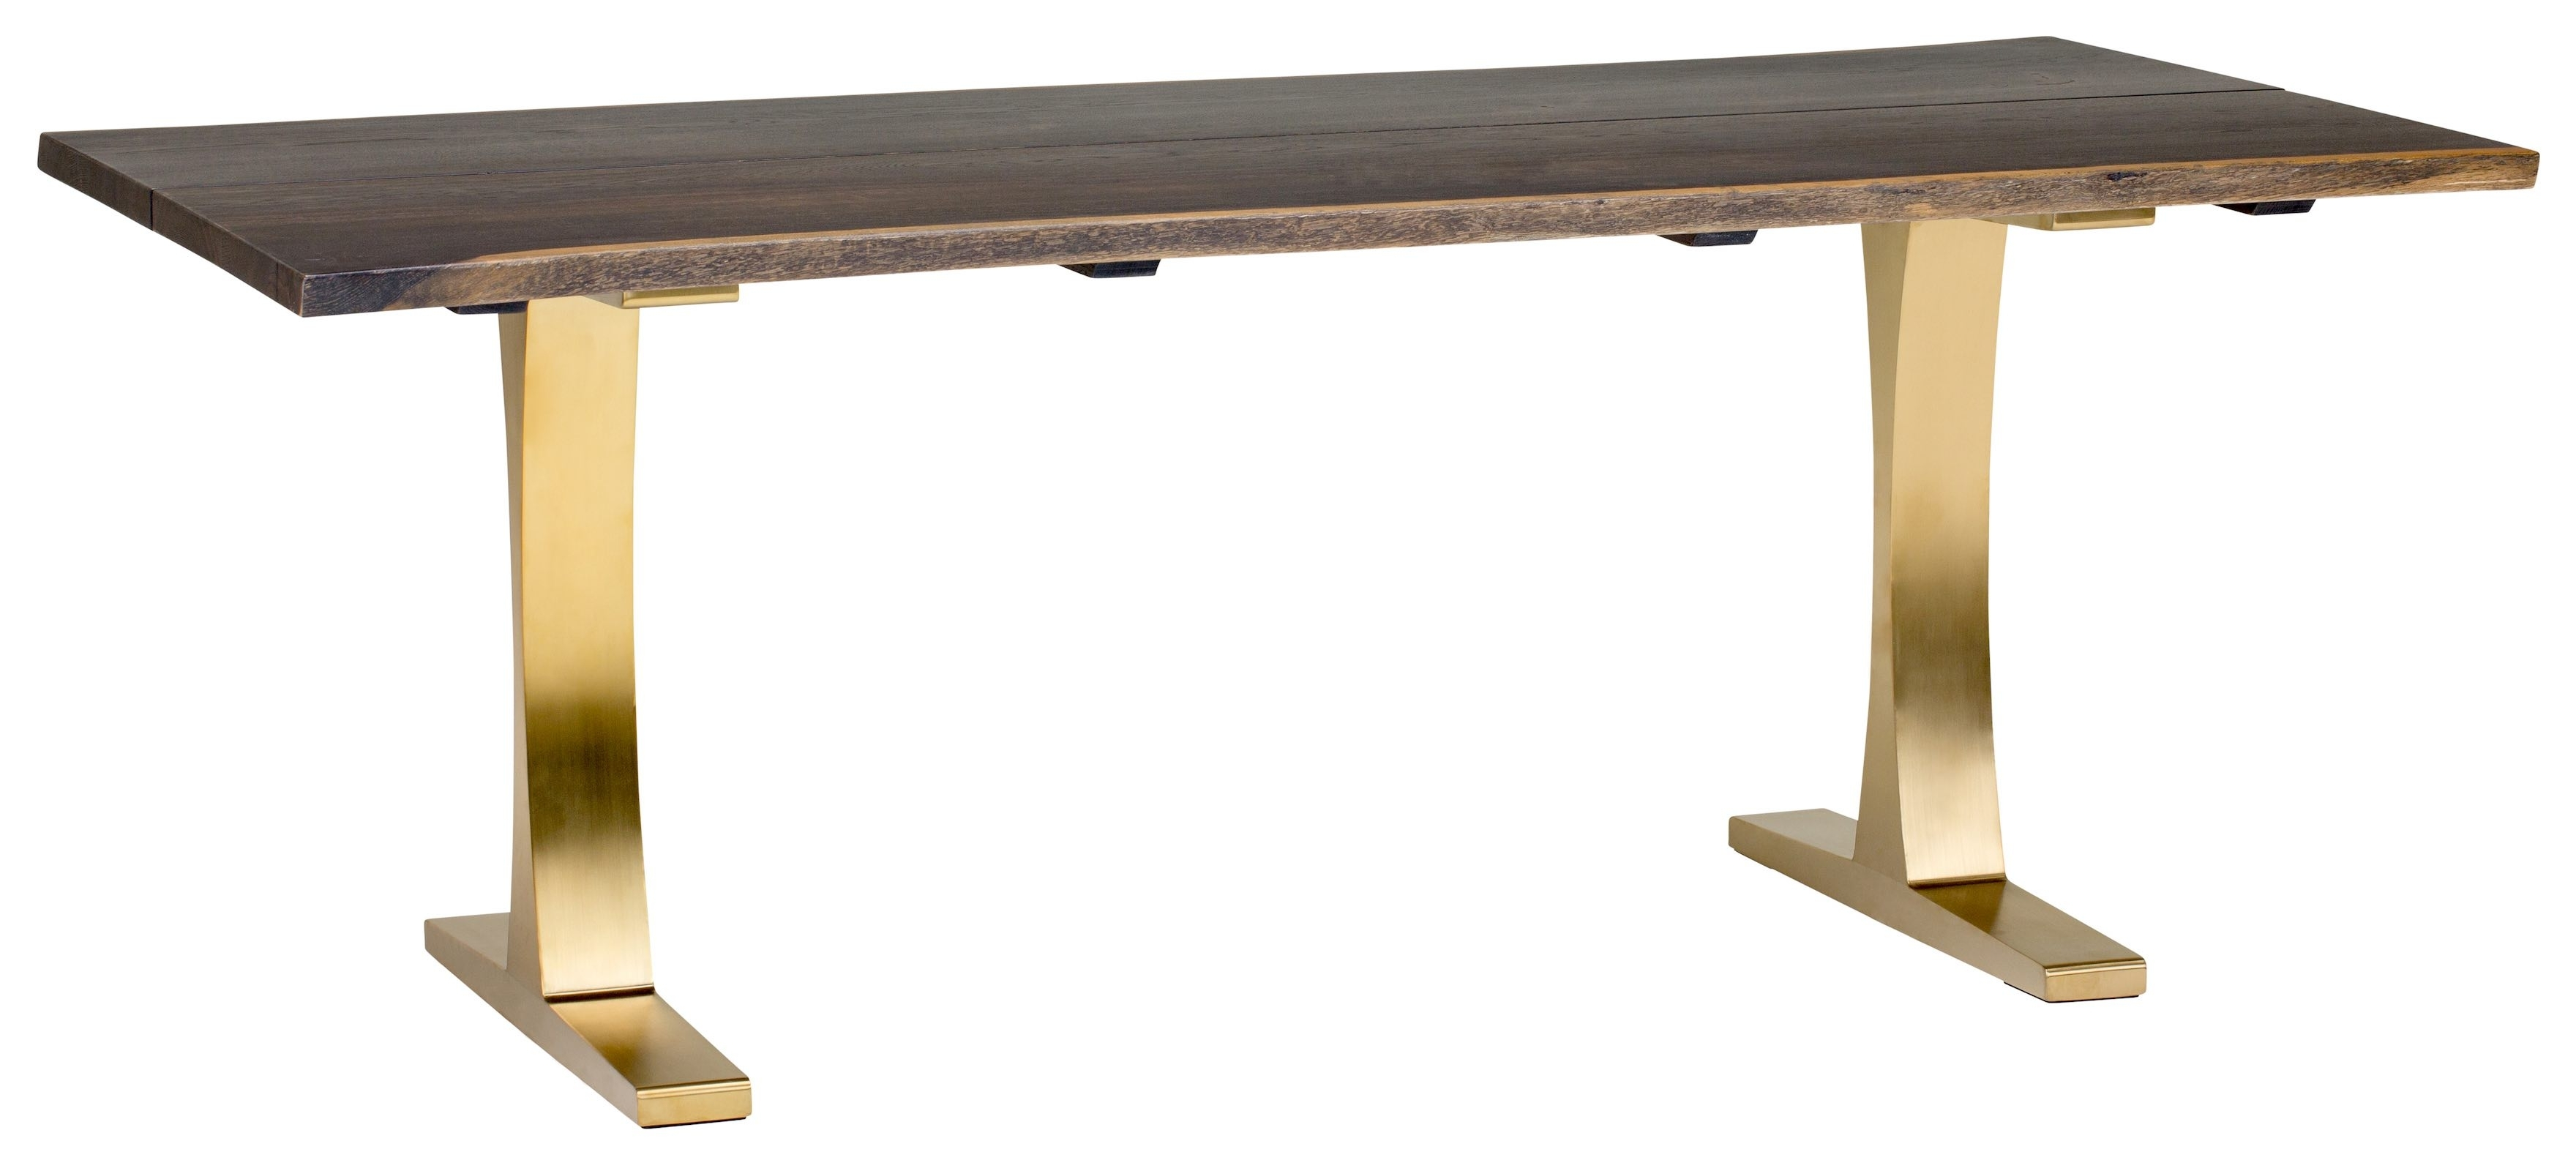 Toulouse Boule 78 Inch Dining Table In Seared Oak And Brushed Gold Base Throughout Well Known Portland 78 Inch Dining Tables (View 23 of 25)